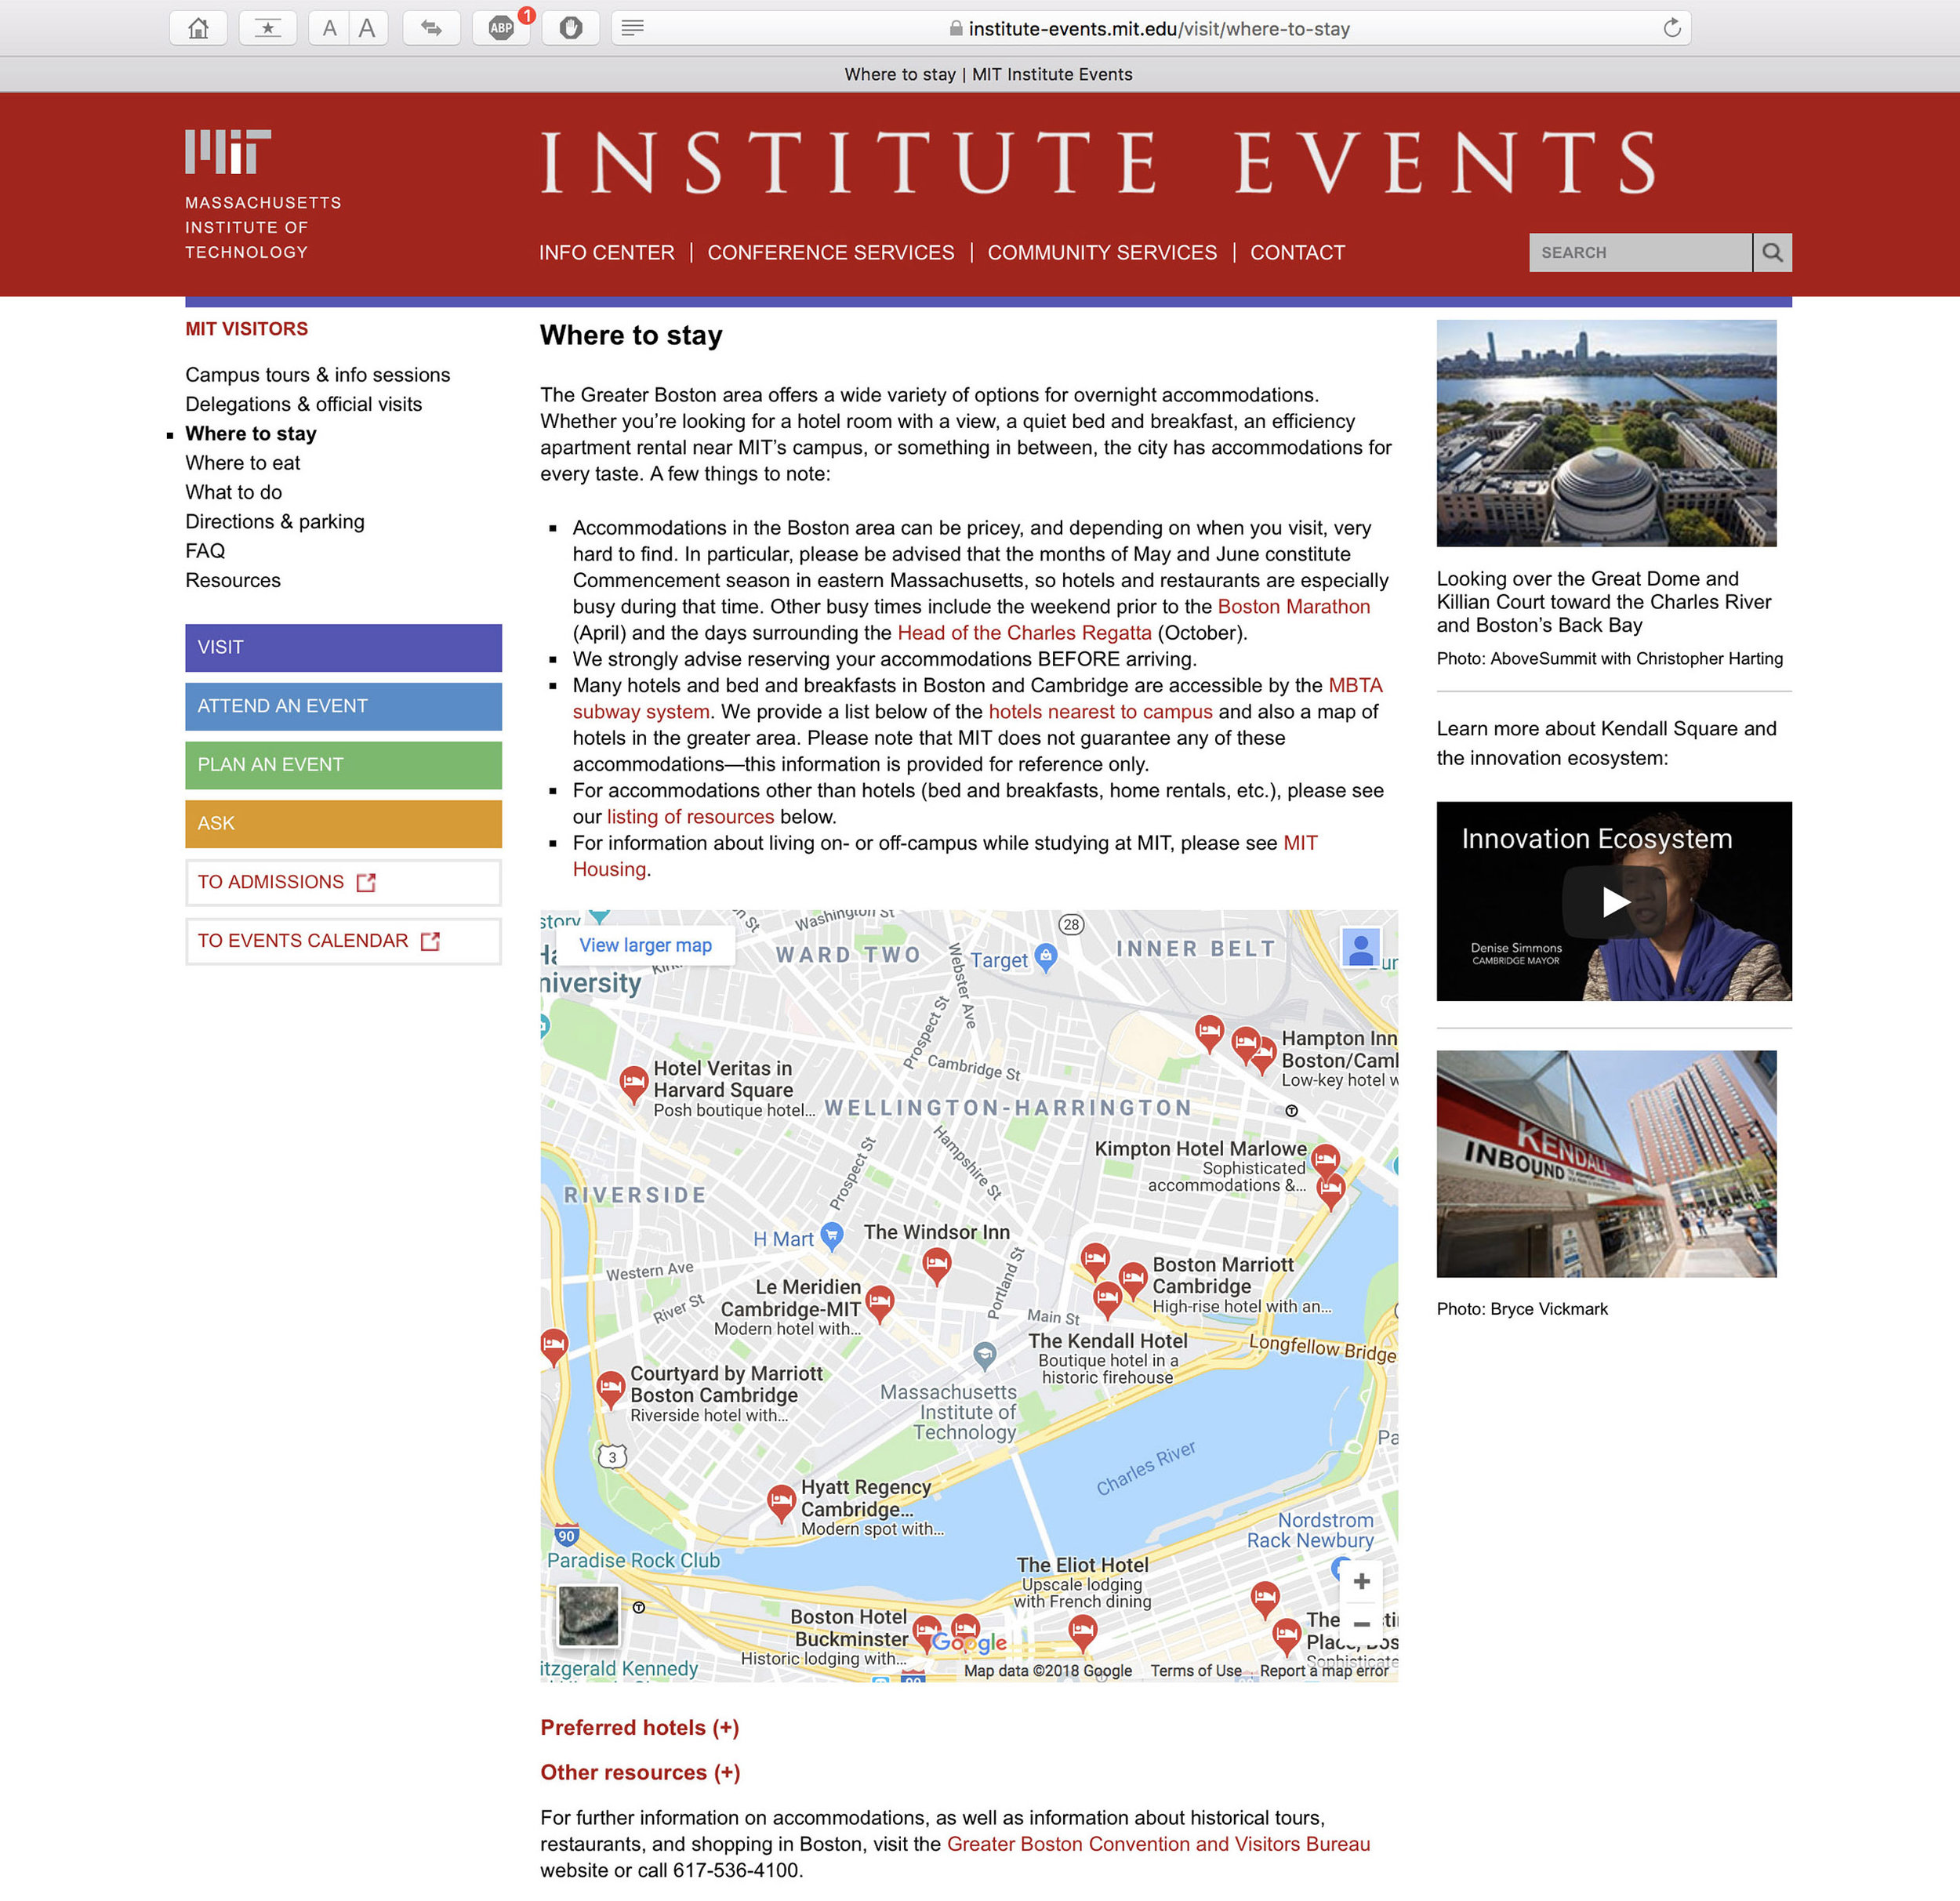 MIT Institute Events, 2nd level page